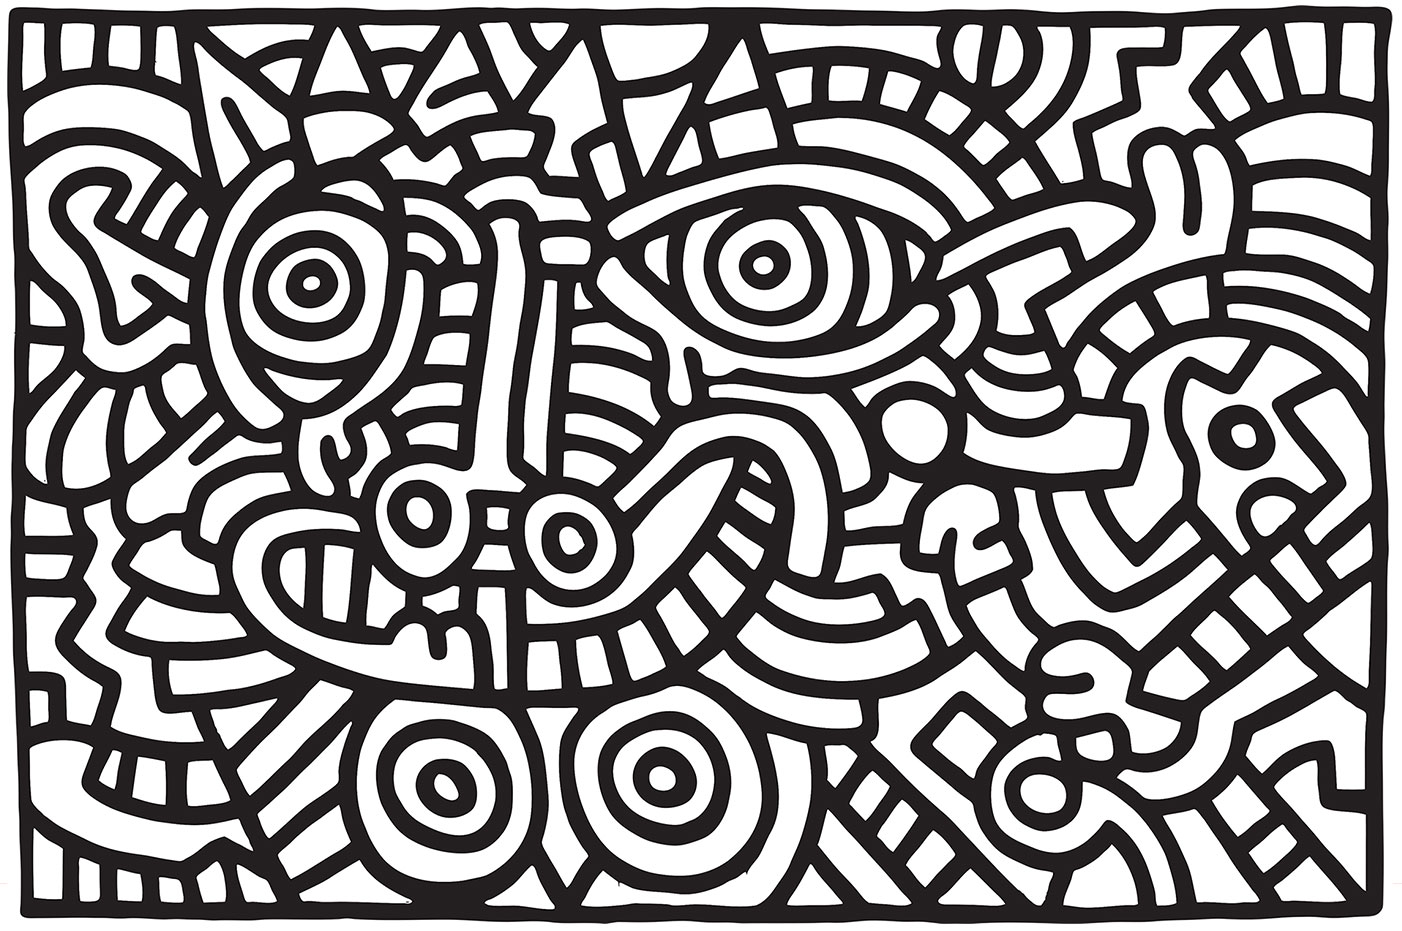 Keith Haring | Untitled, 1986 | Charitable Gifting | The Violet Files | @violetgrey